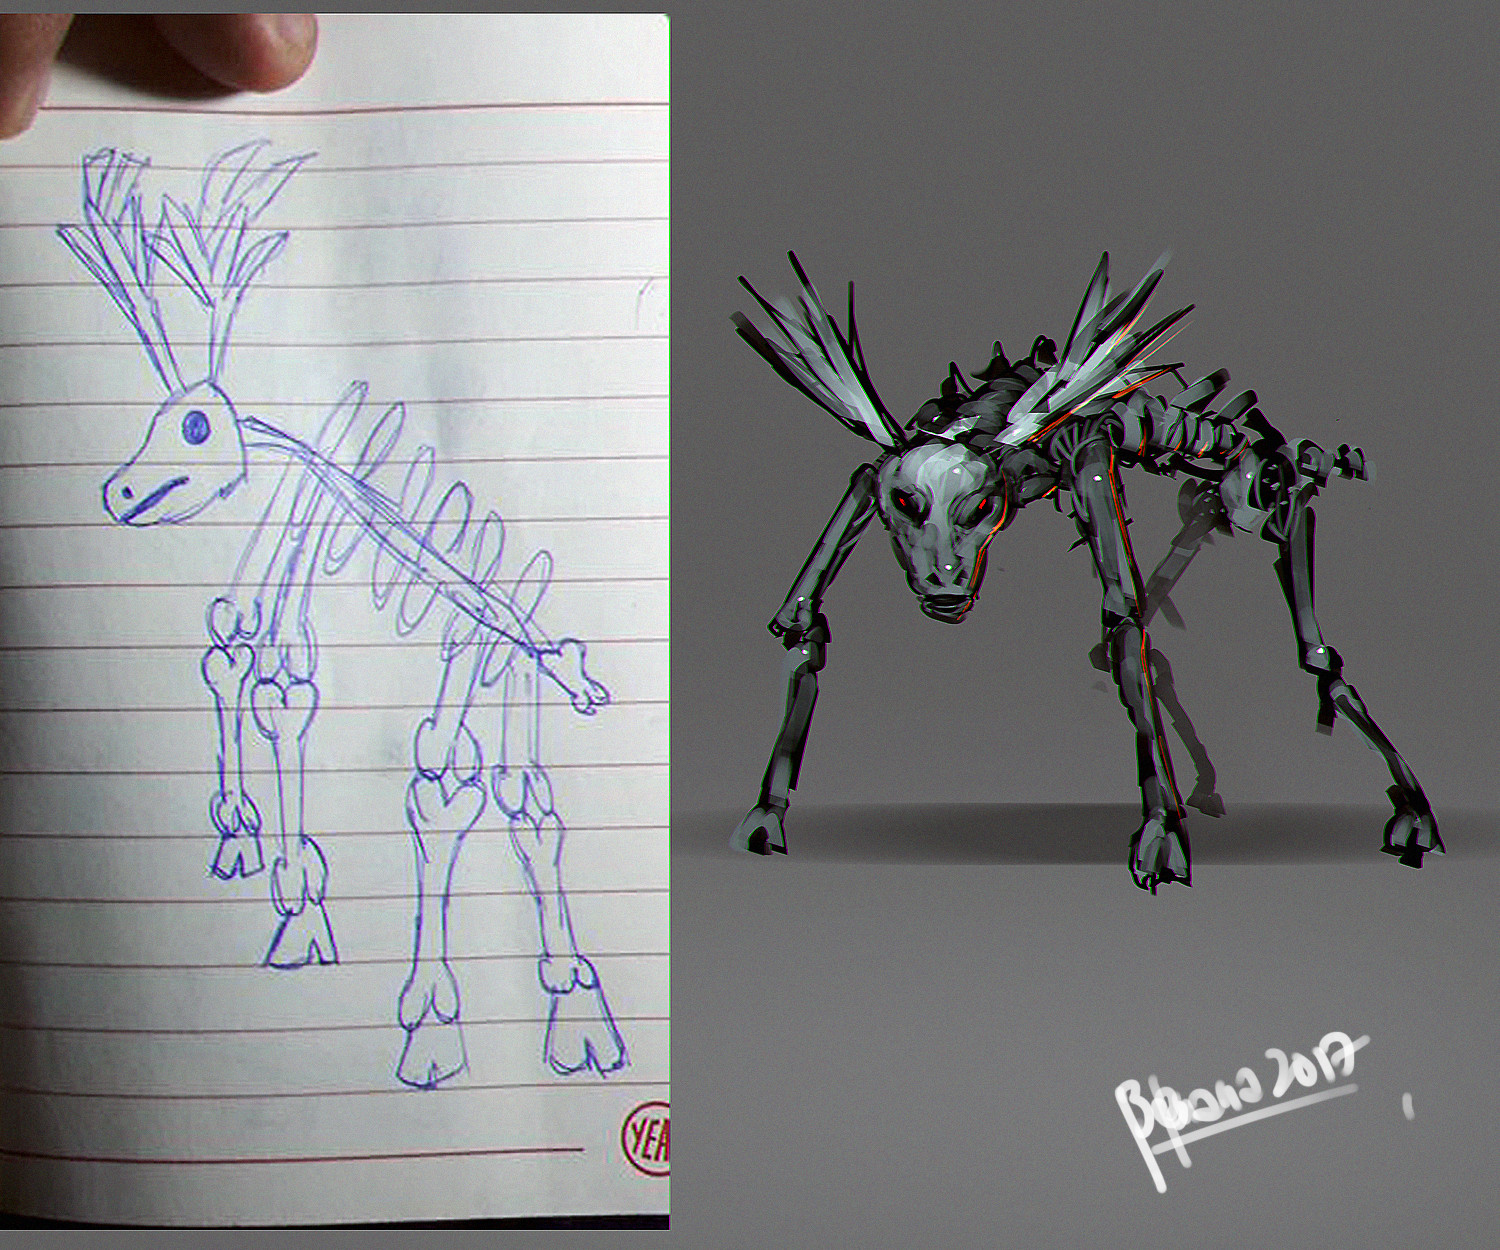 Benedick bana chuchay drawing recreate 02 lores